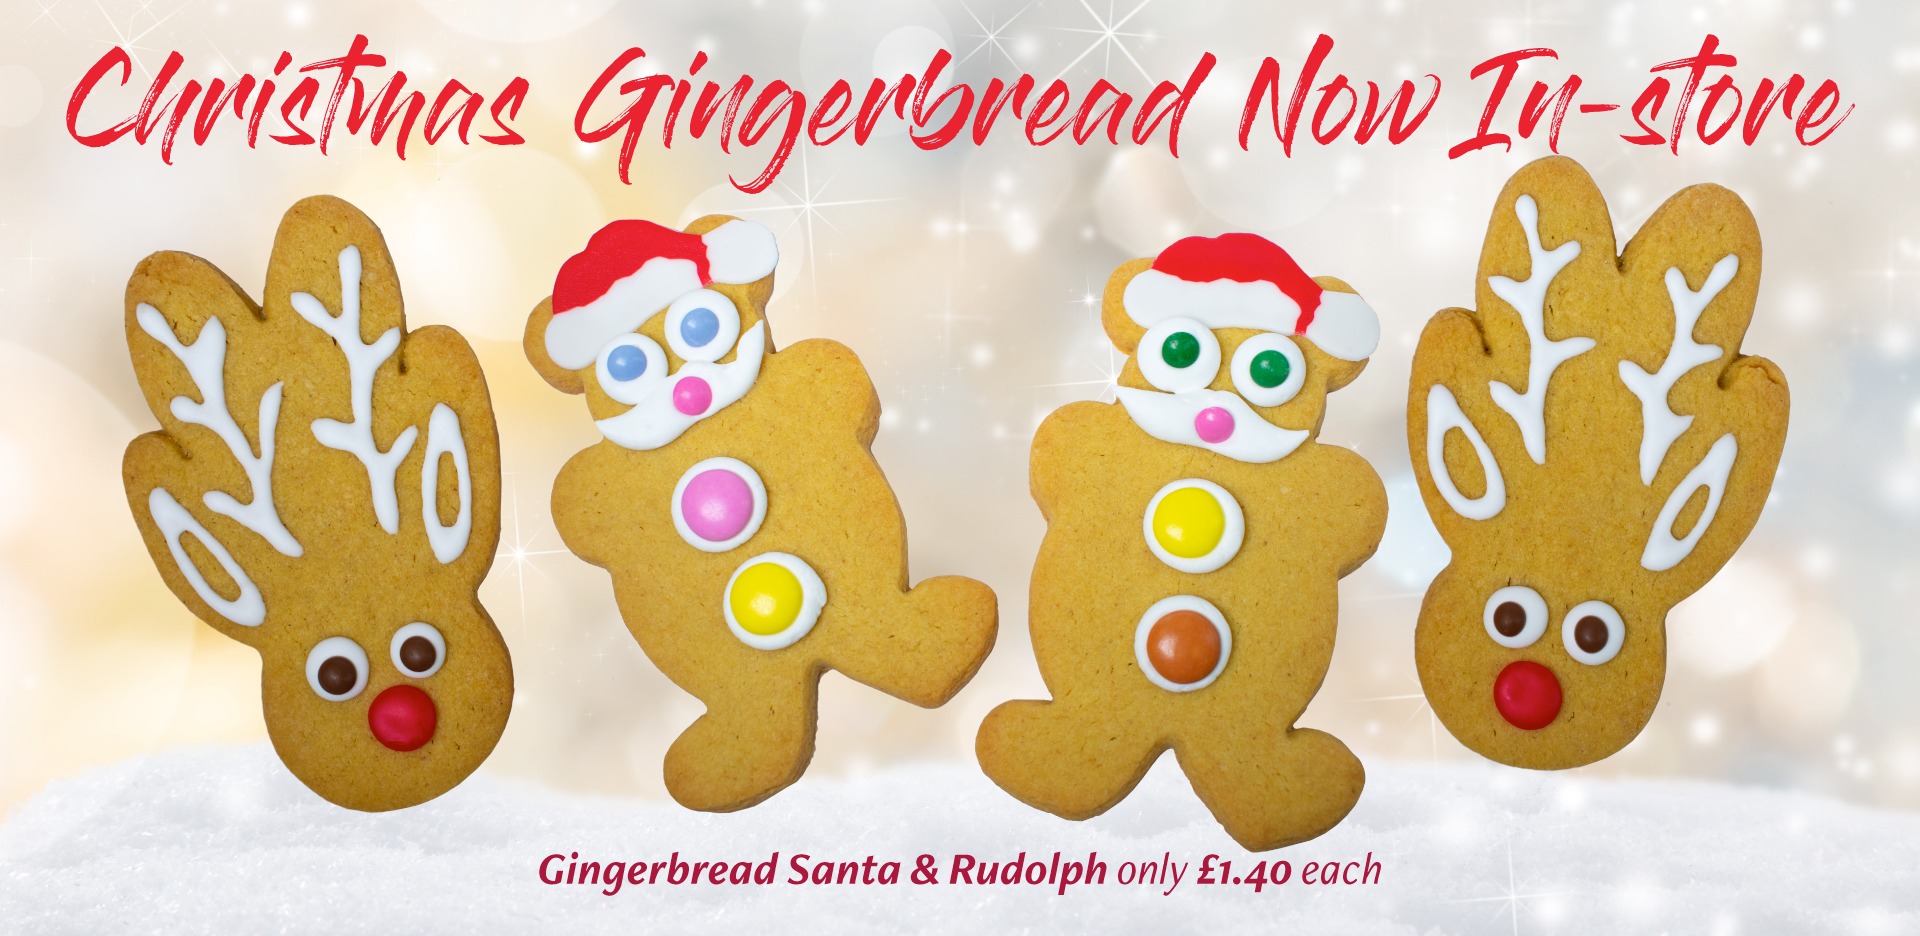 Christmas Gingerbread now in store